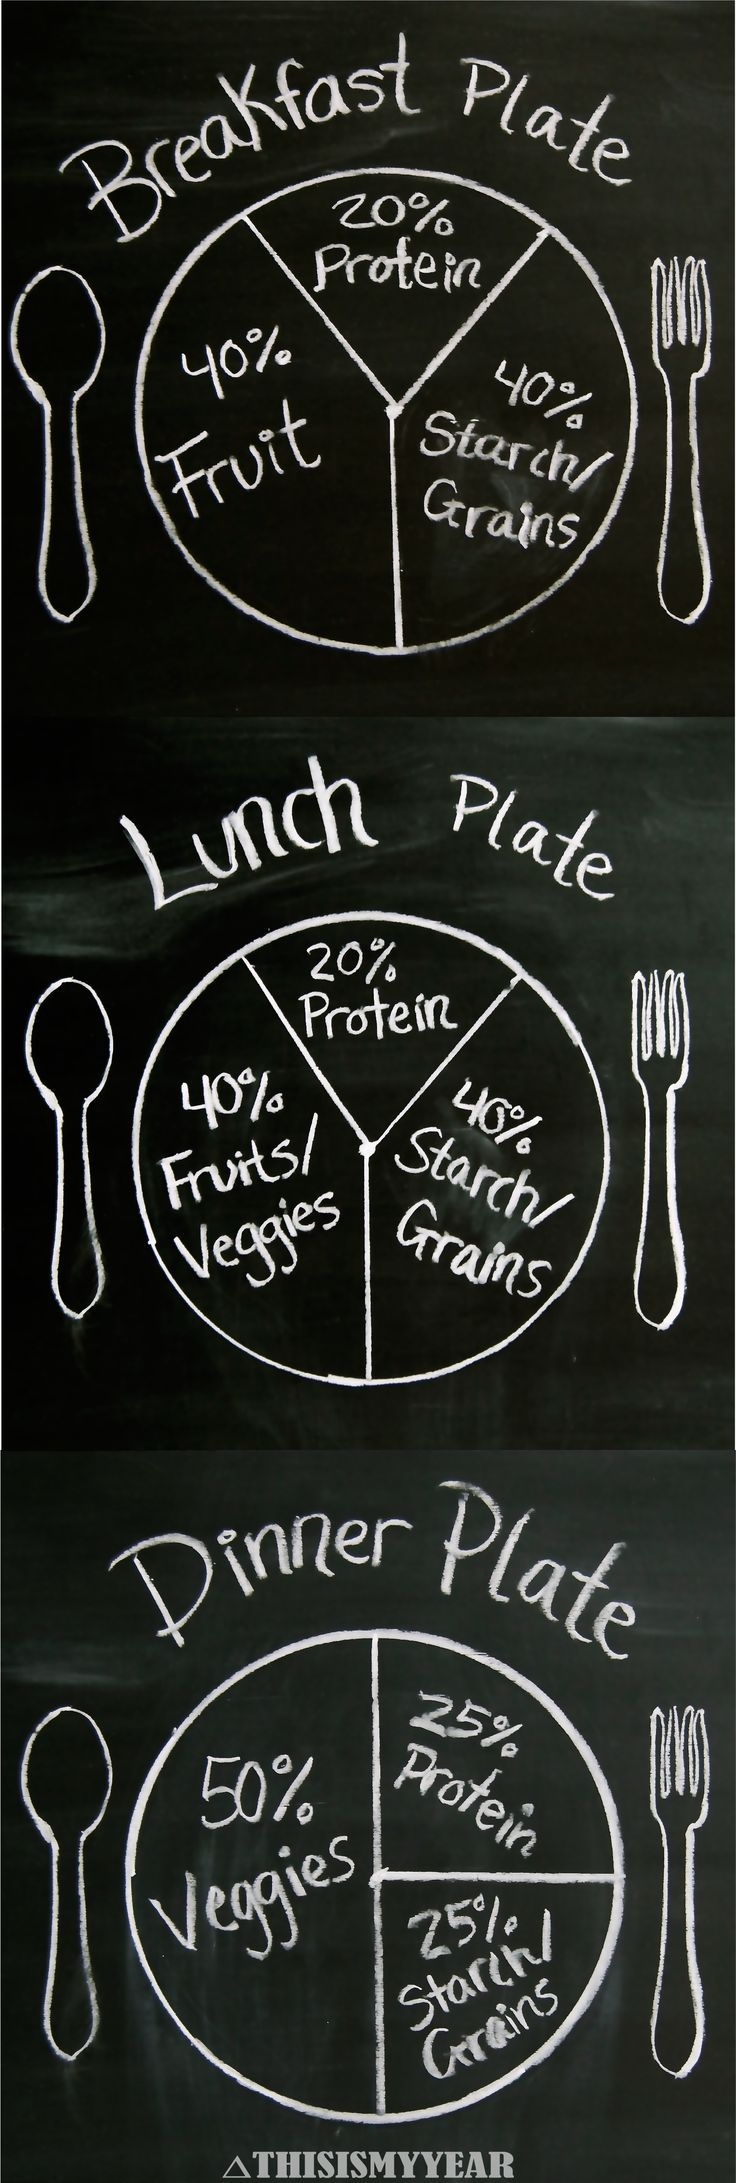 #fatloss #weightloss fatlossplan Plant Based Diet Plate Portions. A great guideline to use when fixing your plate. #thisismyyear #plantbased